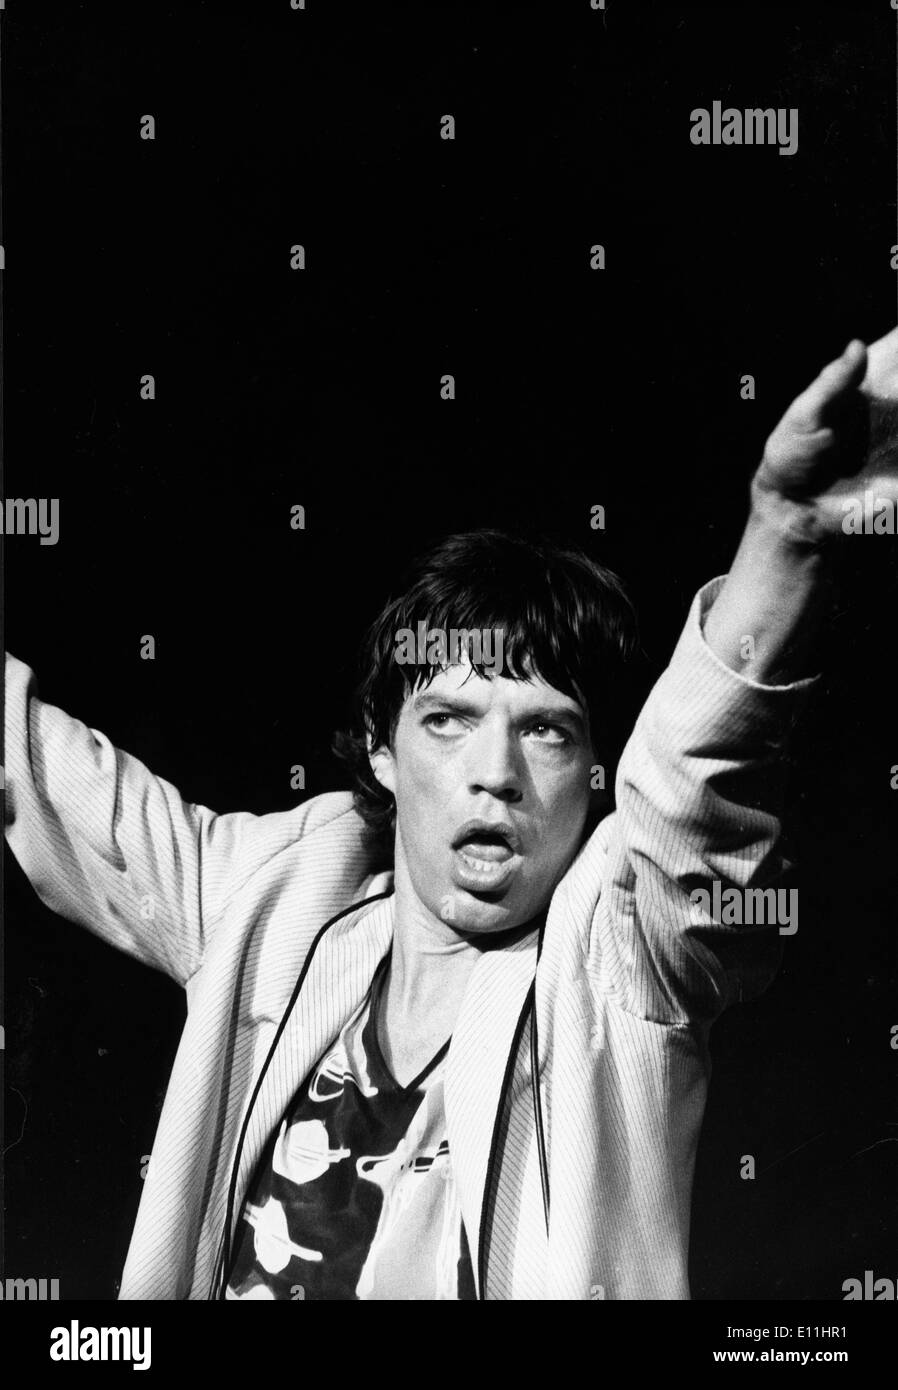 Rolling Stones singer Mick Jagger performs in New York - Stock Image